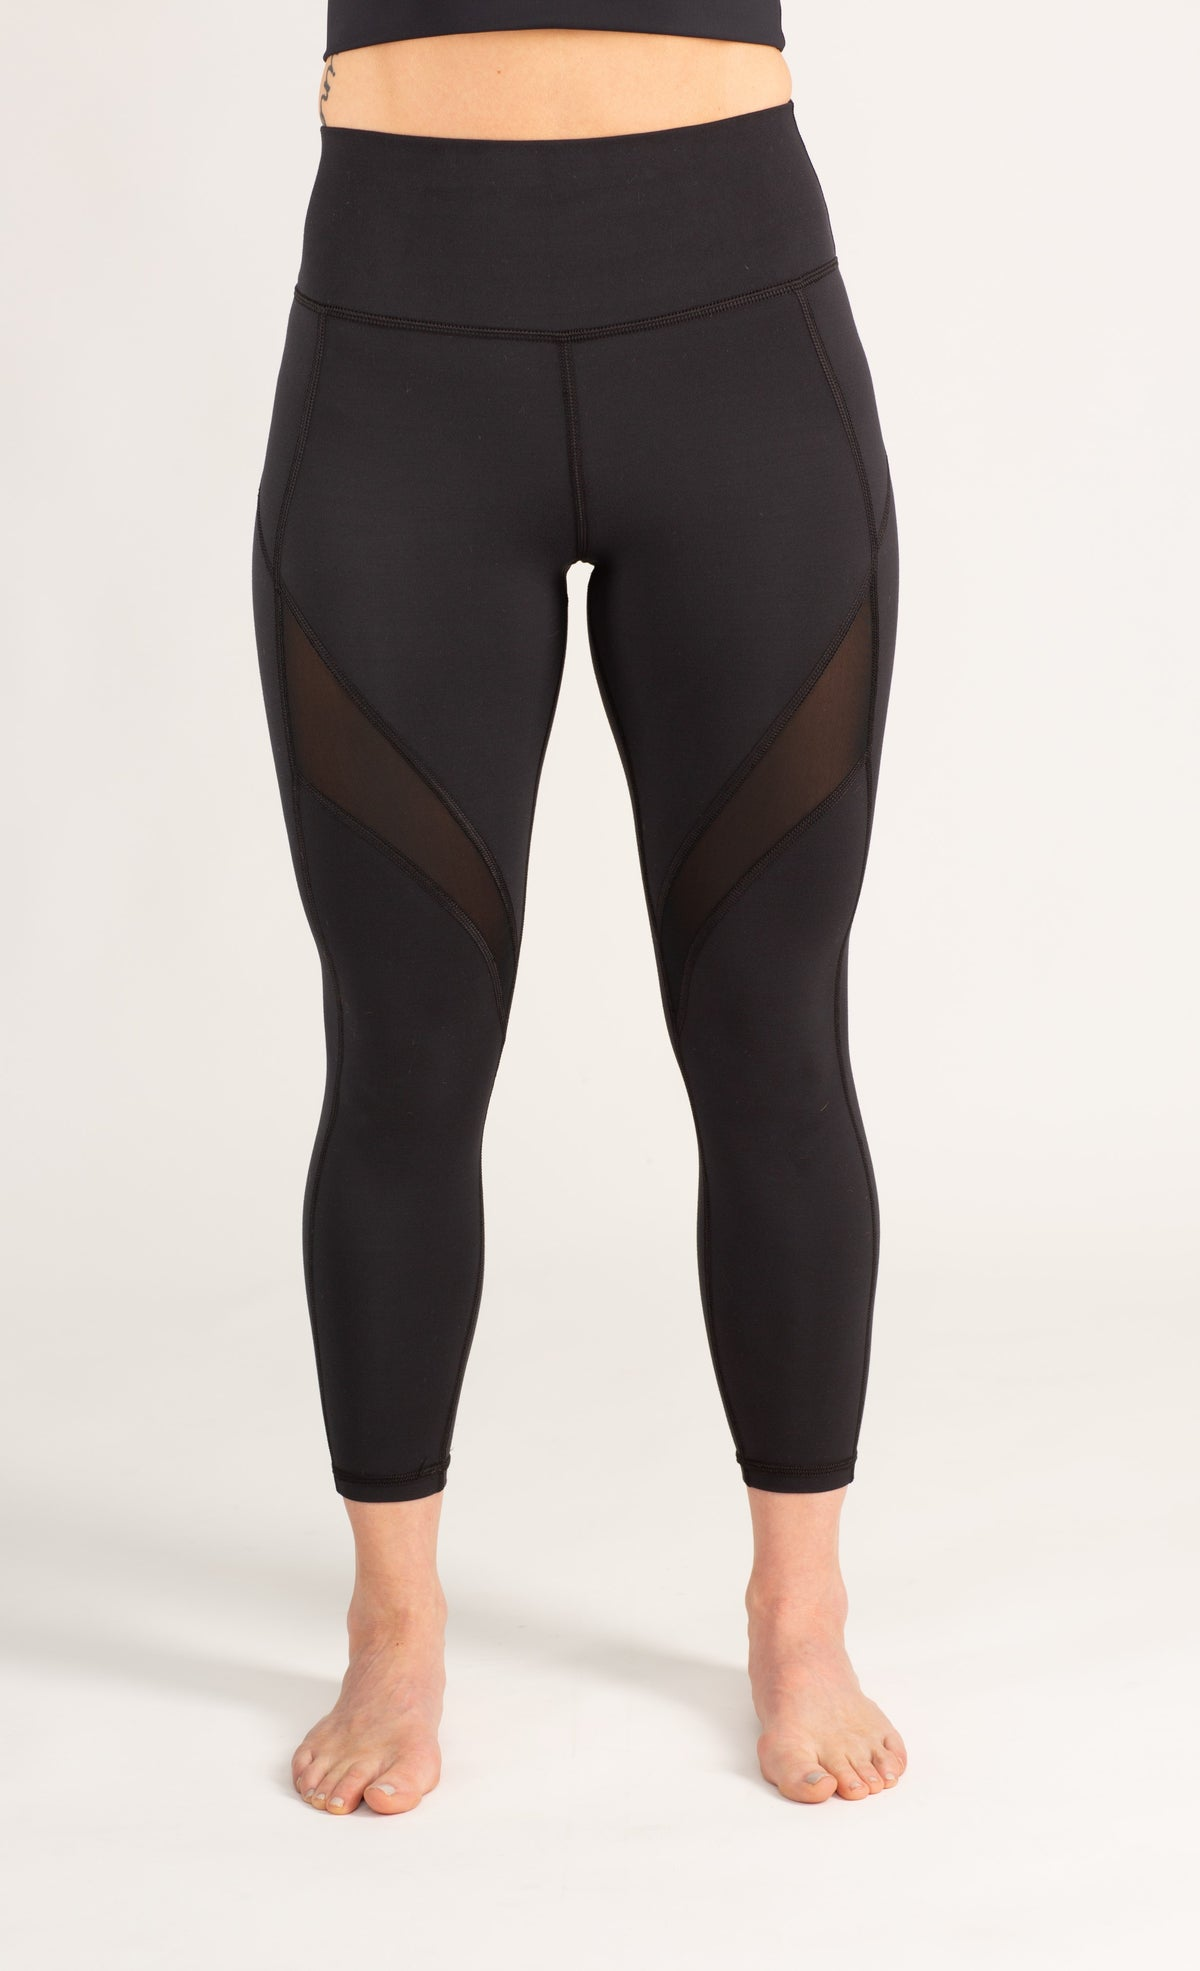 black high waisted tummy control mesh leggings